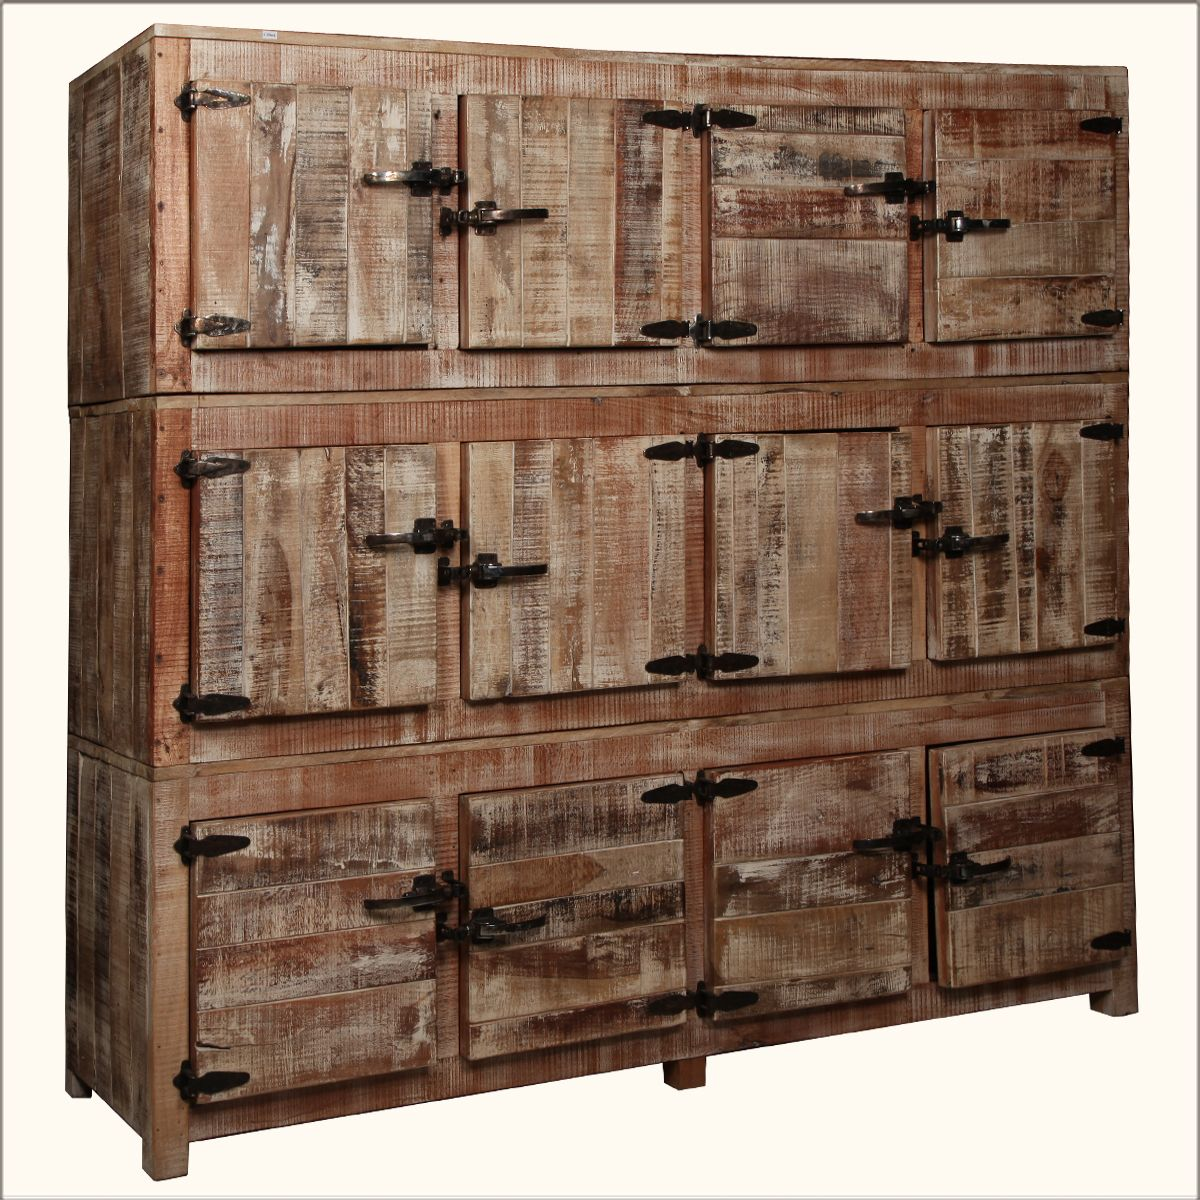 Wall Unit Wooden Large Rustic Reclaimed Wood 12 Storage Box Wall Unit